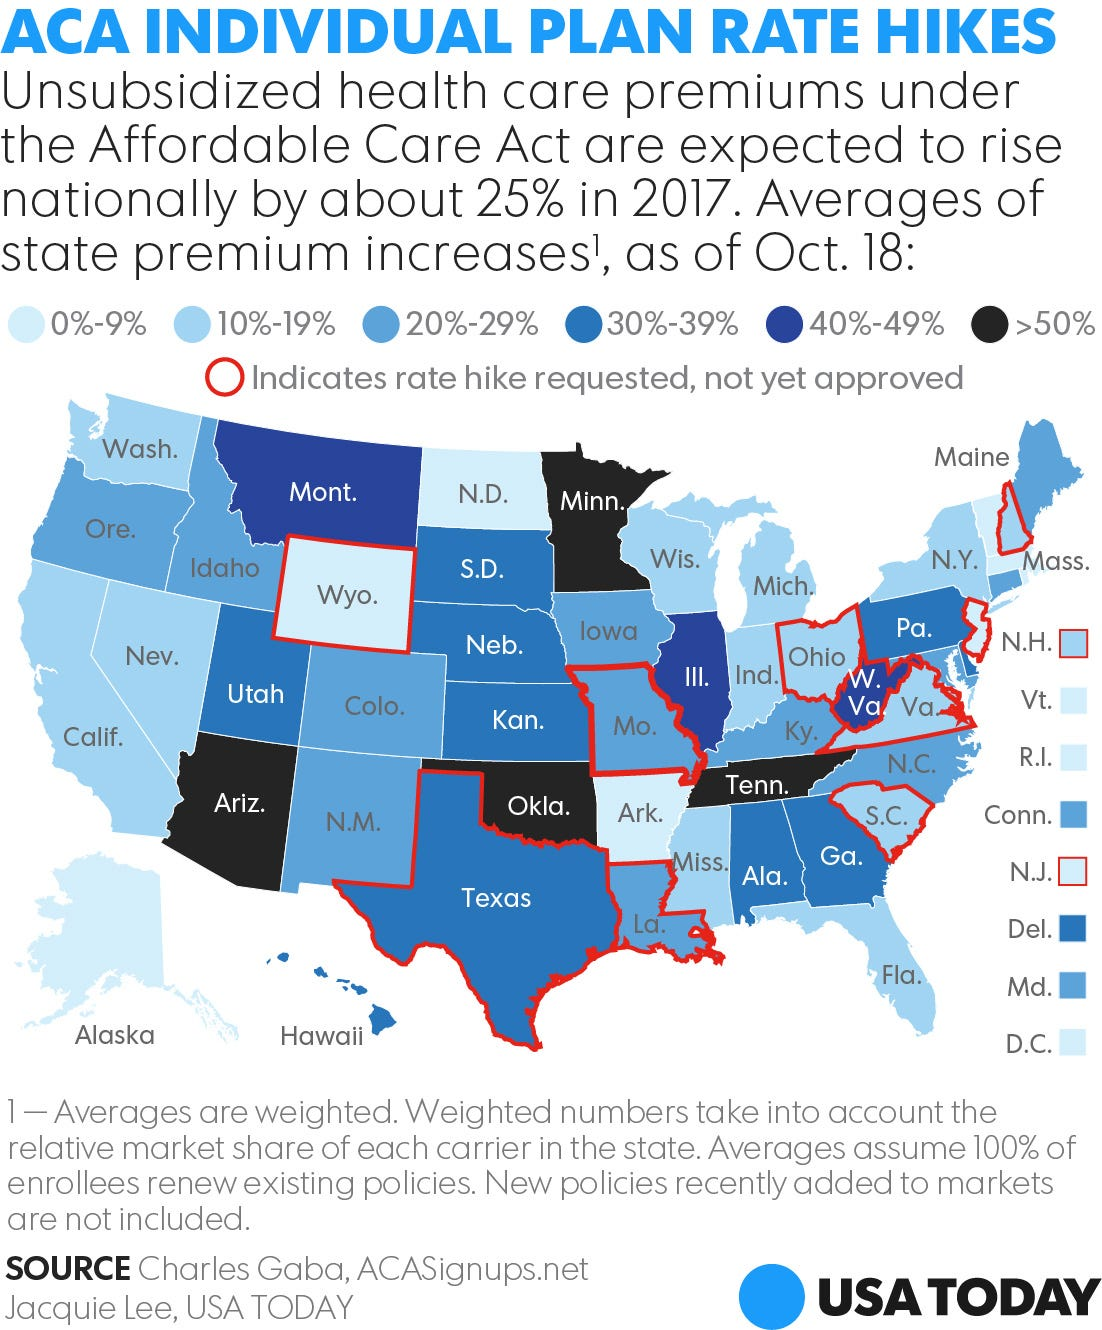 Republican Health Care Bill Whats It also New York Approved 2016 Weighted Avg Rate Increase 71 Vs 104 additionally Senate Health Bill Fails To Pick Up Support After Week Of Recess in addition Lt Governor Cagle Prescription Obamacare likewise Local Tv Giant Sinclair Broadcasting Increases Must Run Pro Trump Pieces Former Trump Official. on obamacare tax increases 2017